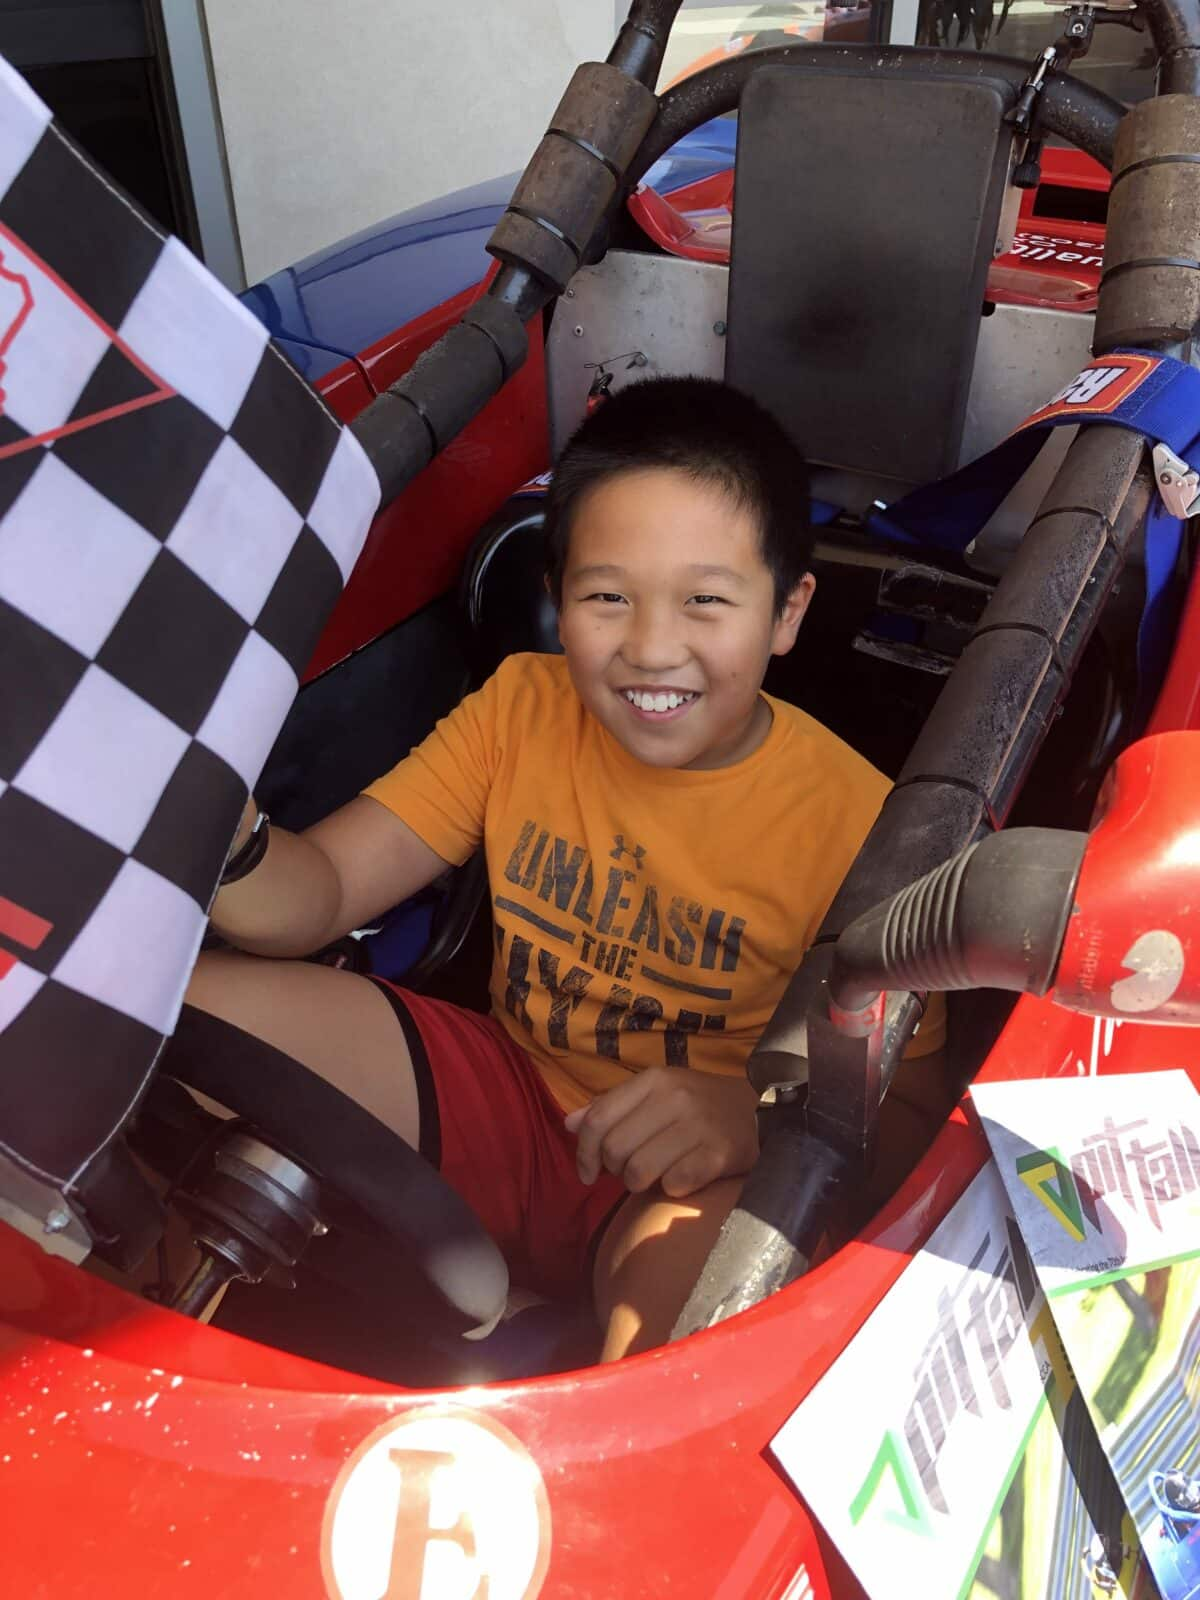 2019 Racing Against Leukemia Raises $14,922